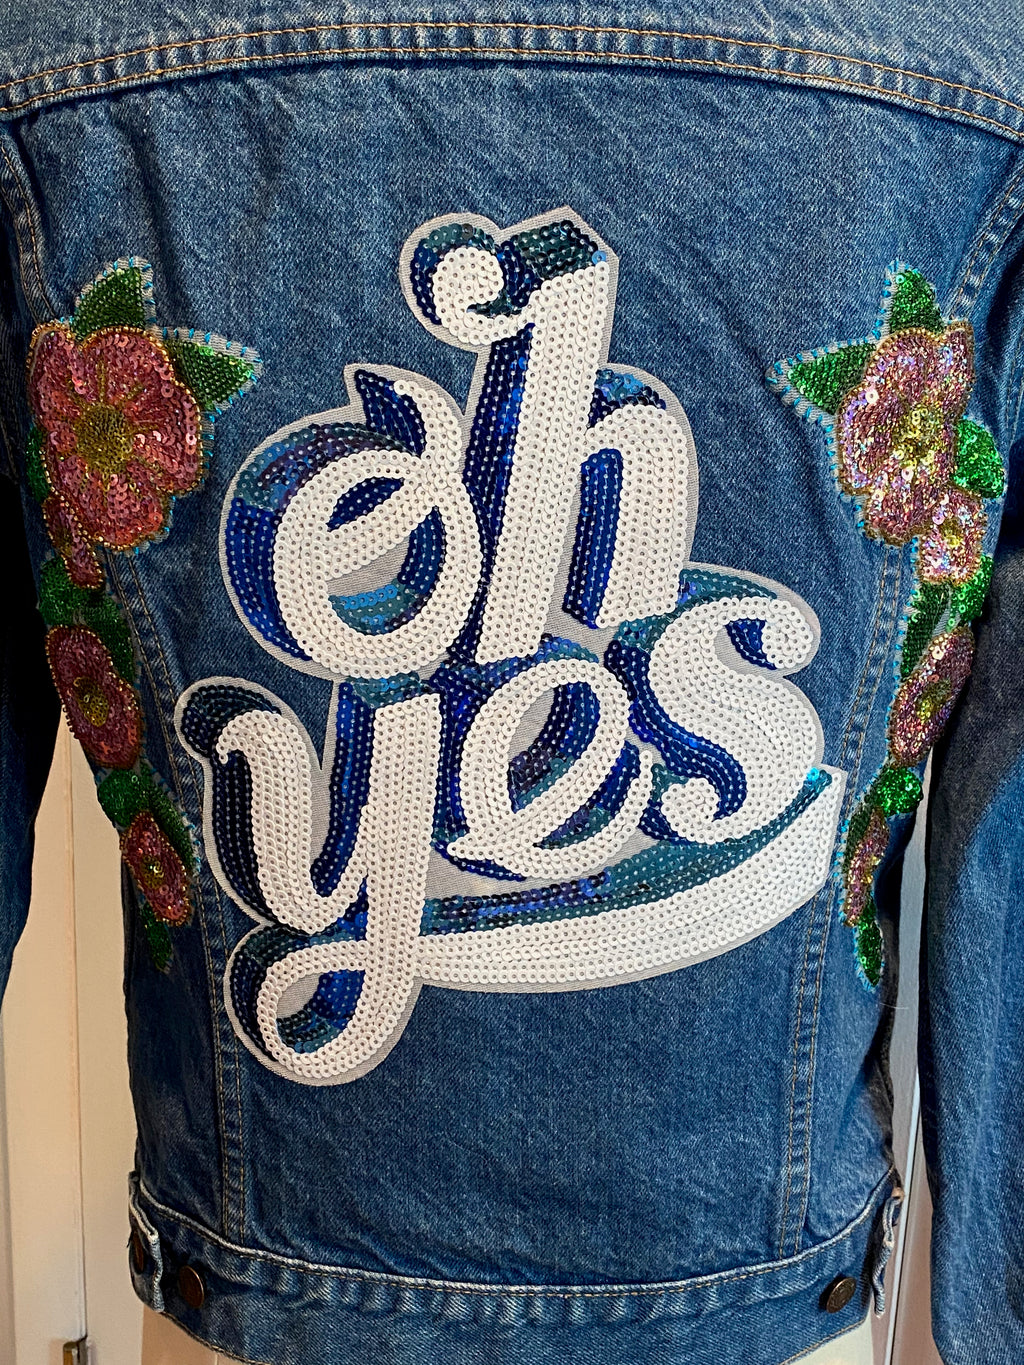 'Oh Yes' Floral Sequin Jean Jacket. Size L